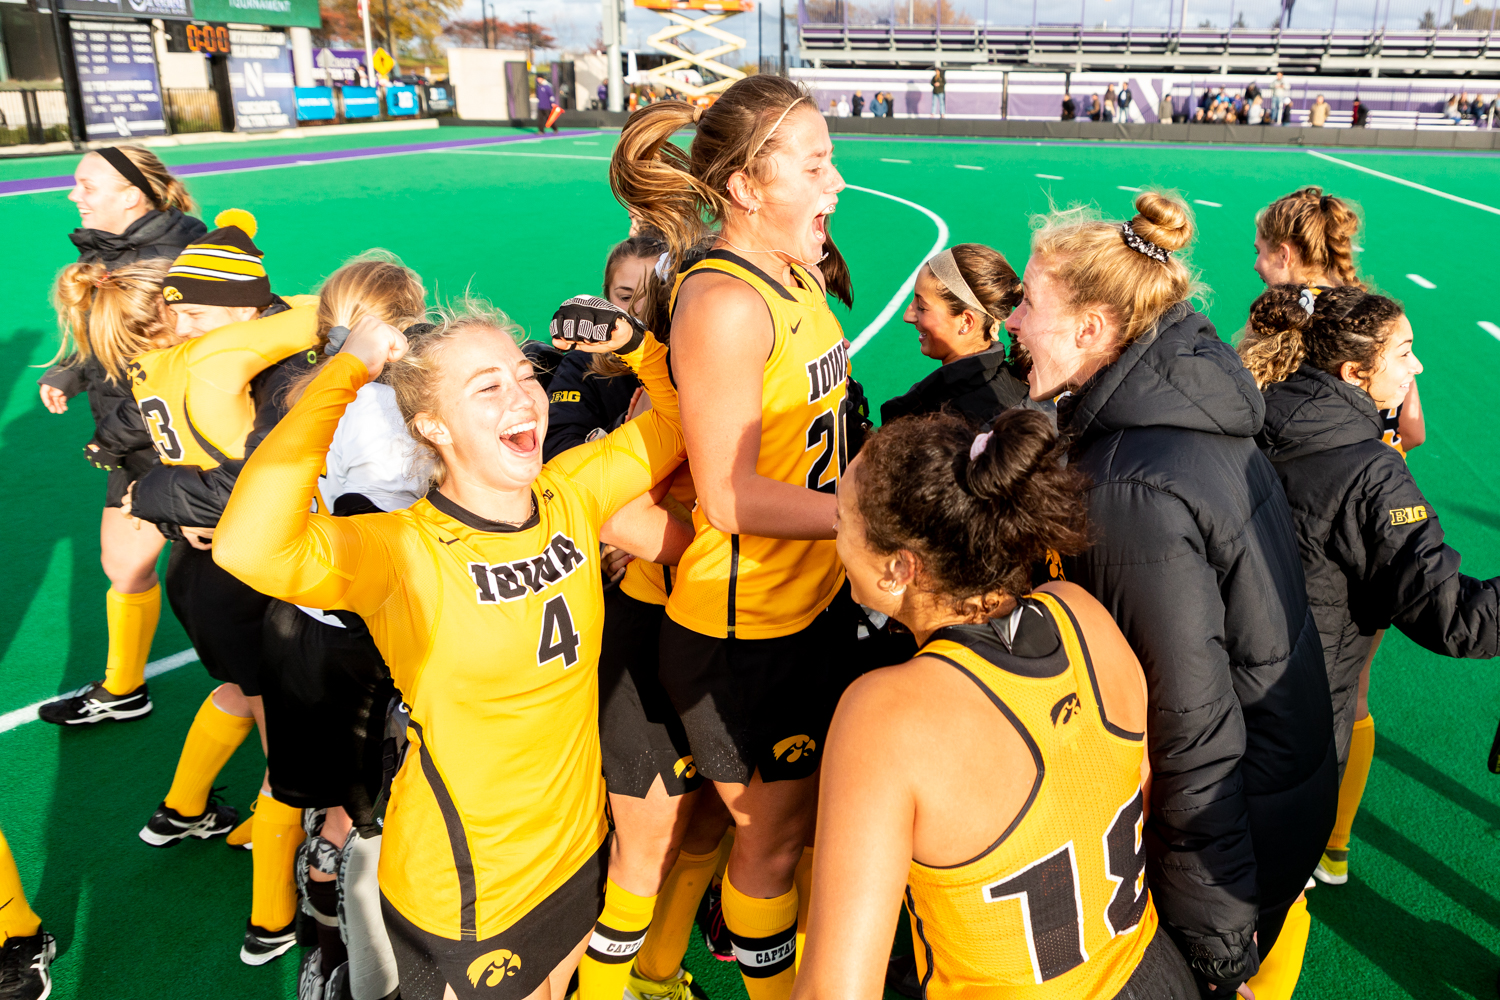 Iowa midfielder Makenna Grewe celebrates with her team after the Semifinals in the Big Ten Field Hockey Tournament at Lakeside Field in Evanston, IL on Friday, Nov. 2, 2018. The no. 8 ranked Hawkeyes defeated the no. 7 ranked Wolverines 2-1. Iowa will play no. 2 ranked Maryland for the championship on Sunday. (David Harmantas/The Daily Iowan)